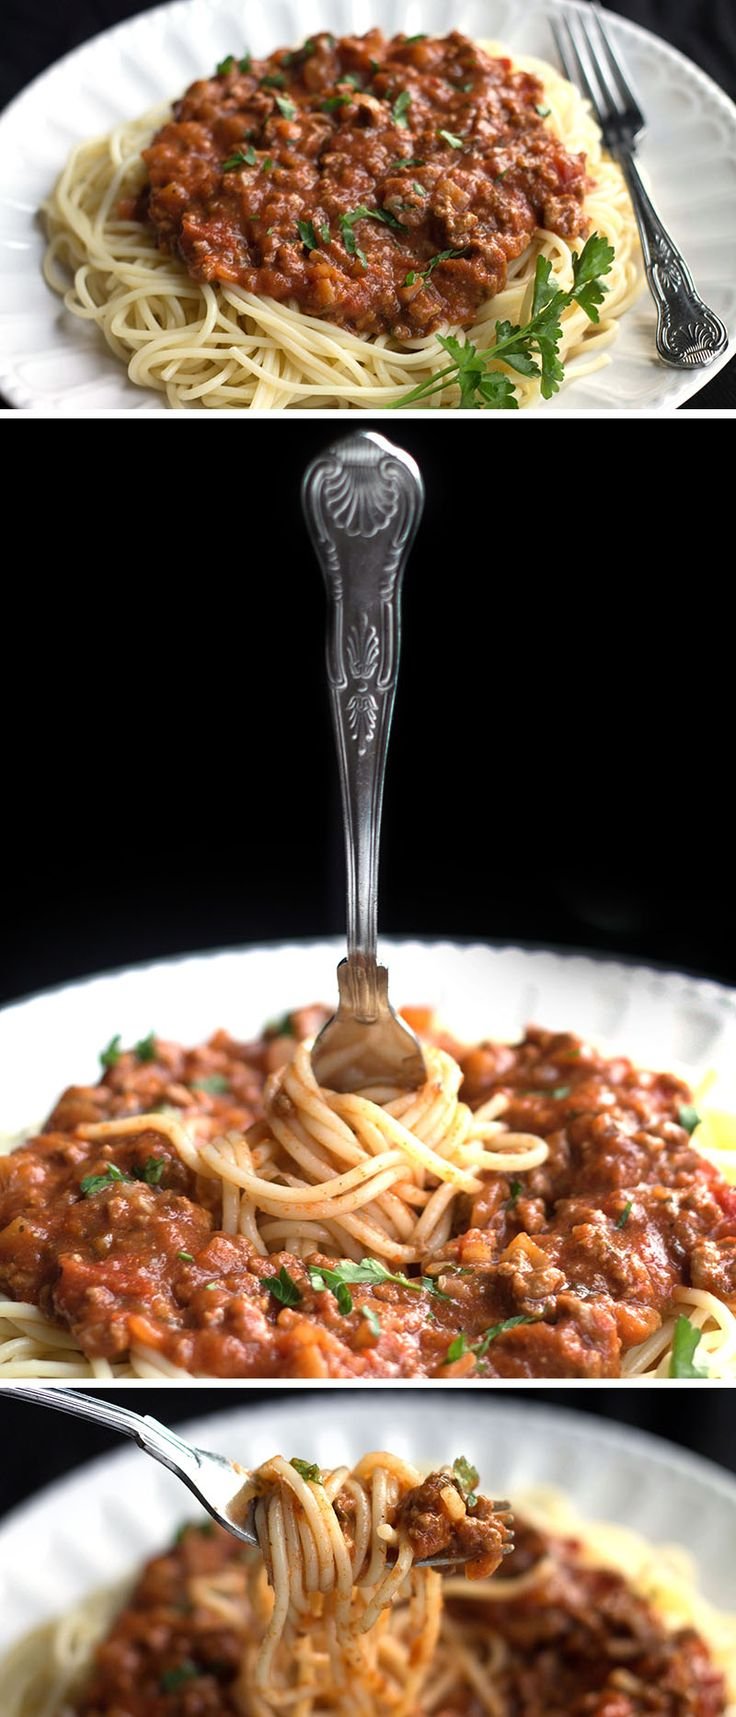 Quick & Easy Spaghetti Bolognese - Erren's Kitchen - This fast-track recipe is bursting with flavor and is ready to eat in just 30 minutes!